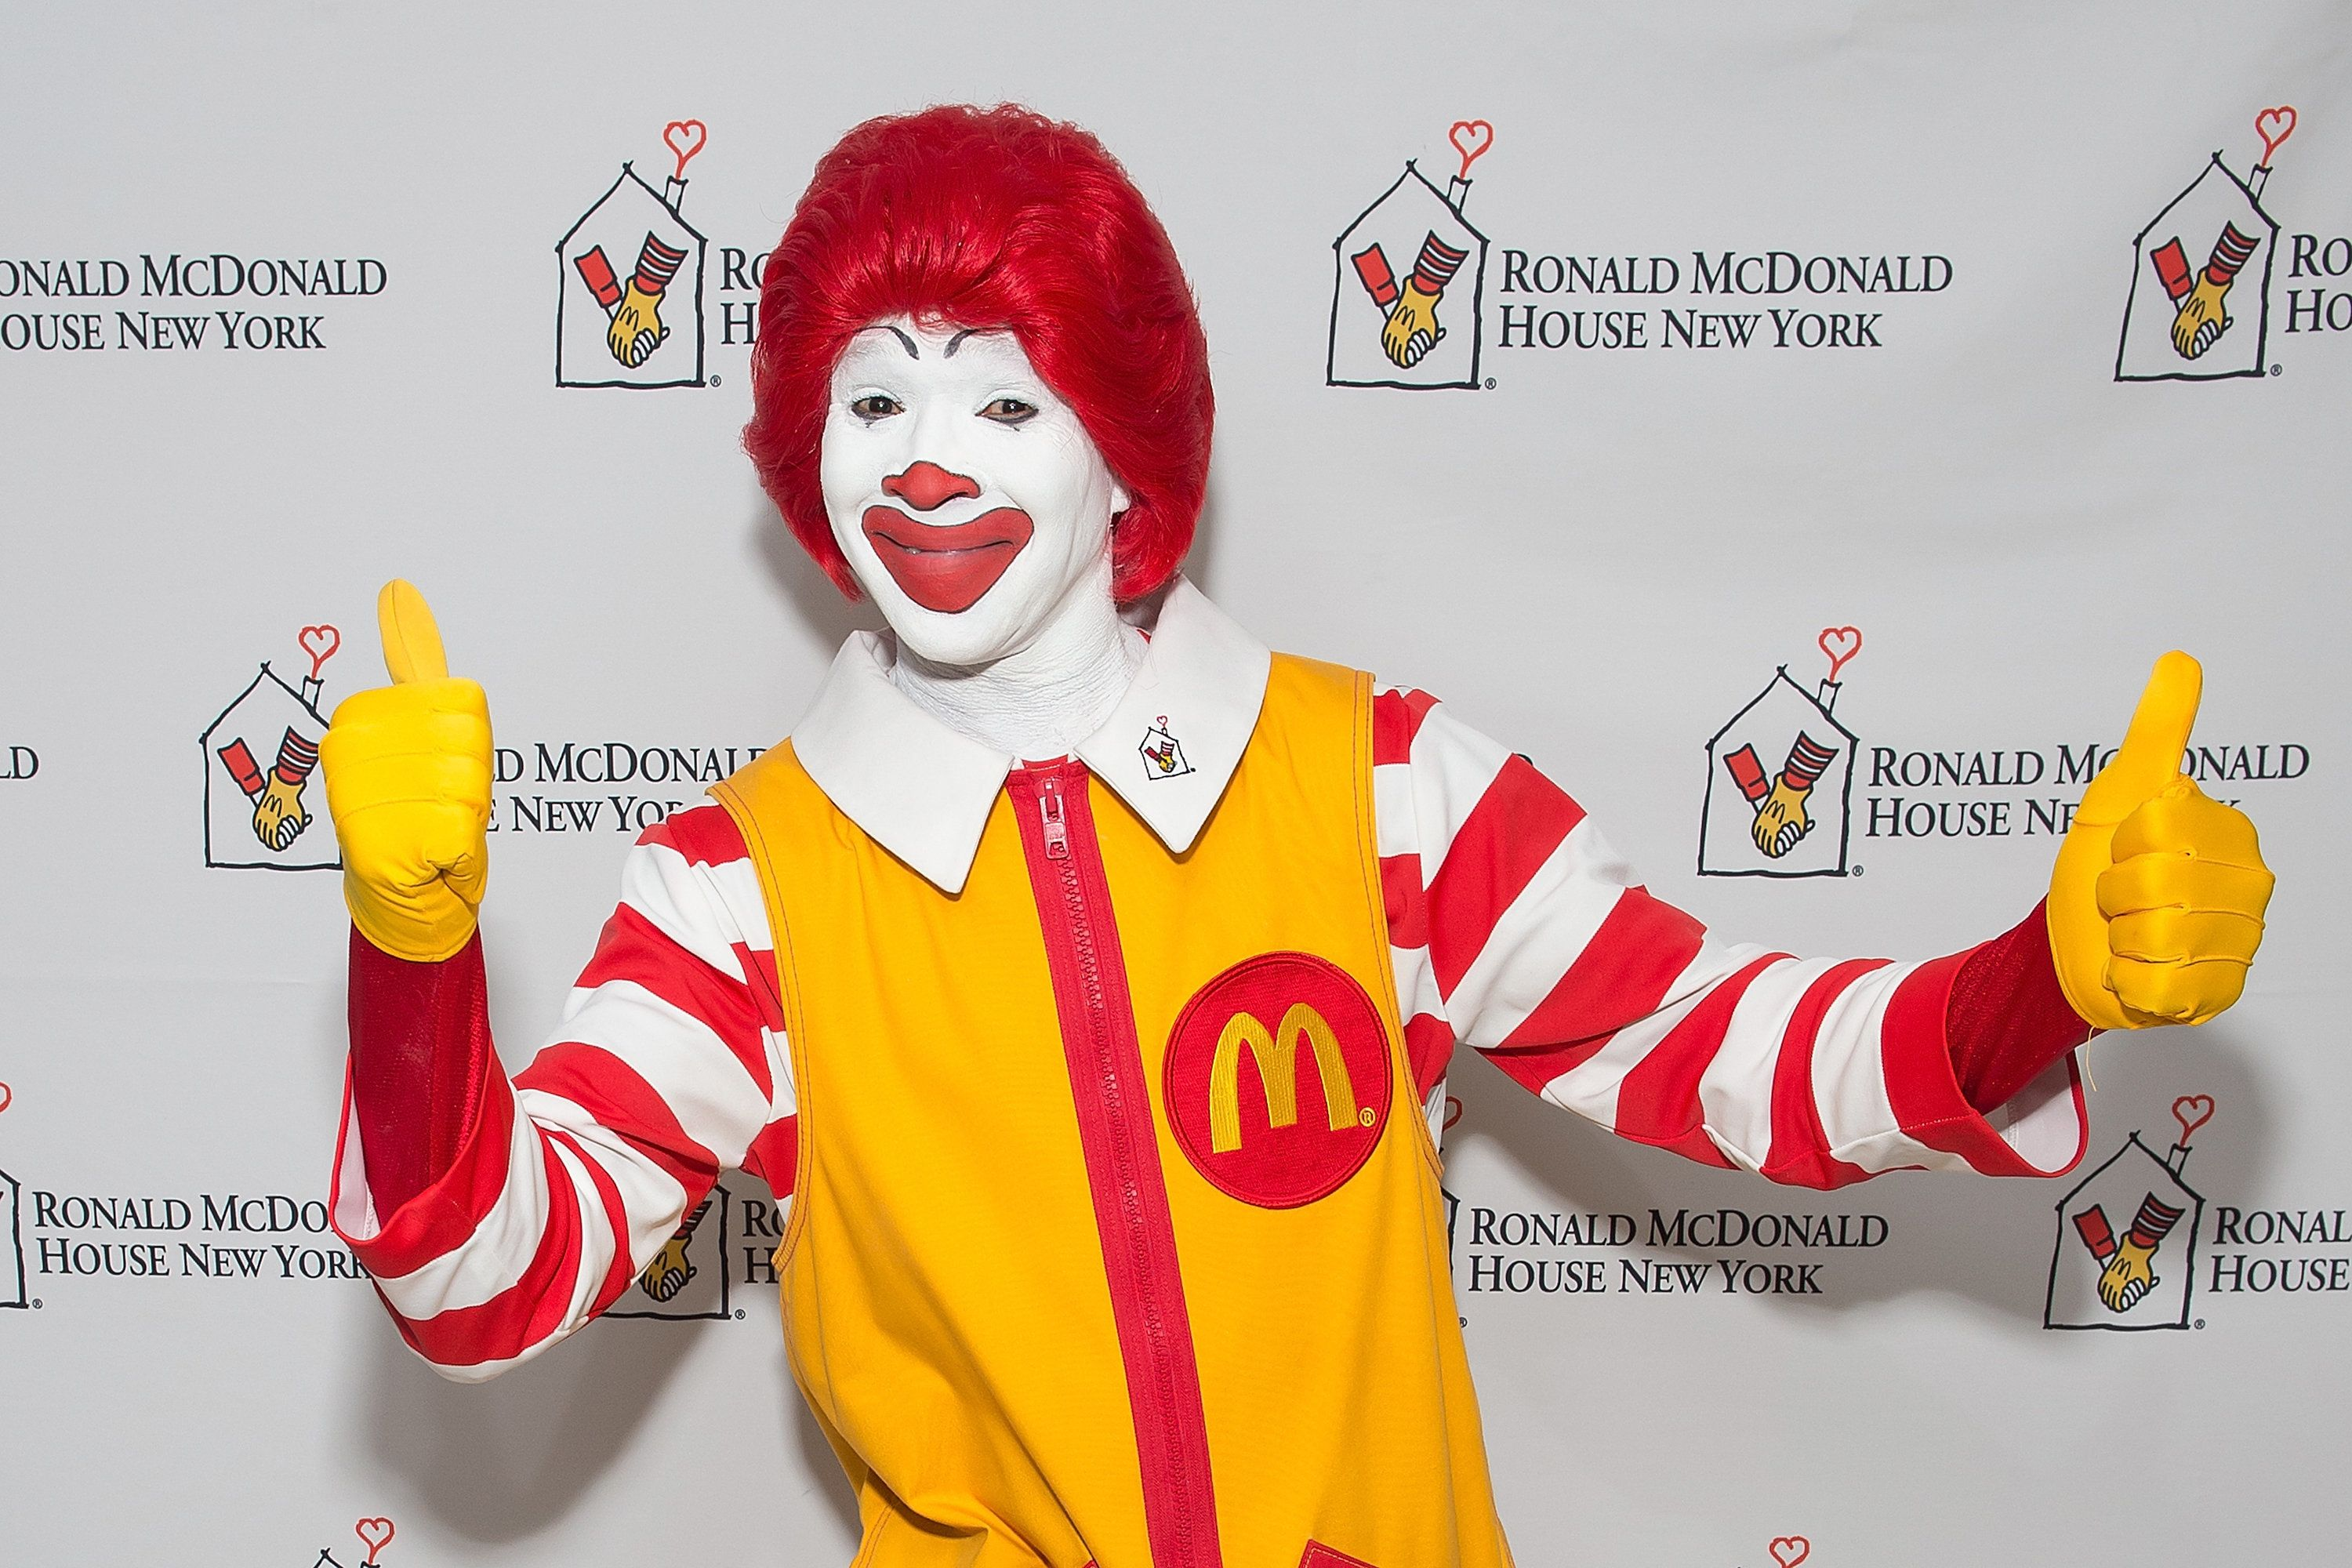 NEW YORK, NY - OCTOBER 30:  An attendee dressed as Ronald McDonald attends the 2014 Masquerade Ball Benefiting Ronald McDonald House at Apella on October 30, 2014 in New York City.  (Photo by Michael Stewart/Getty Images)